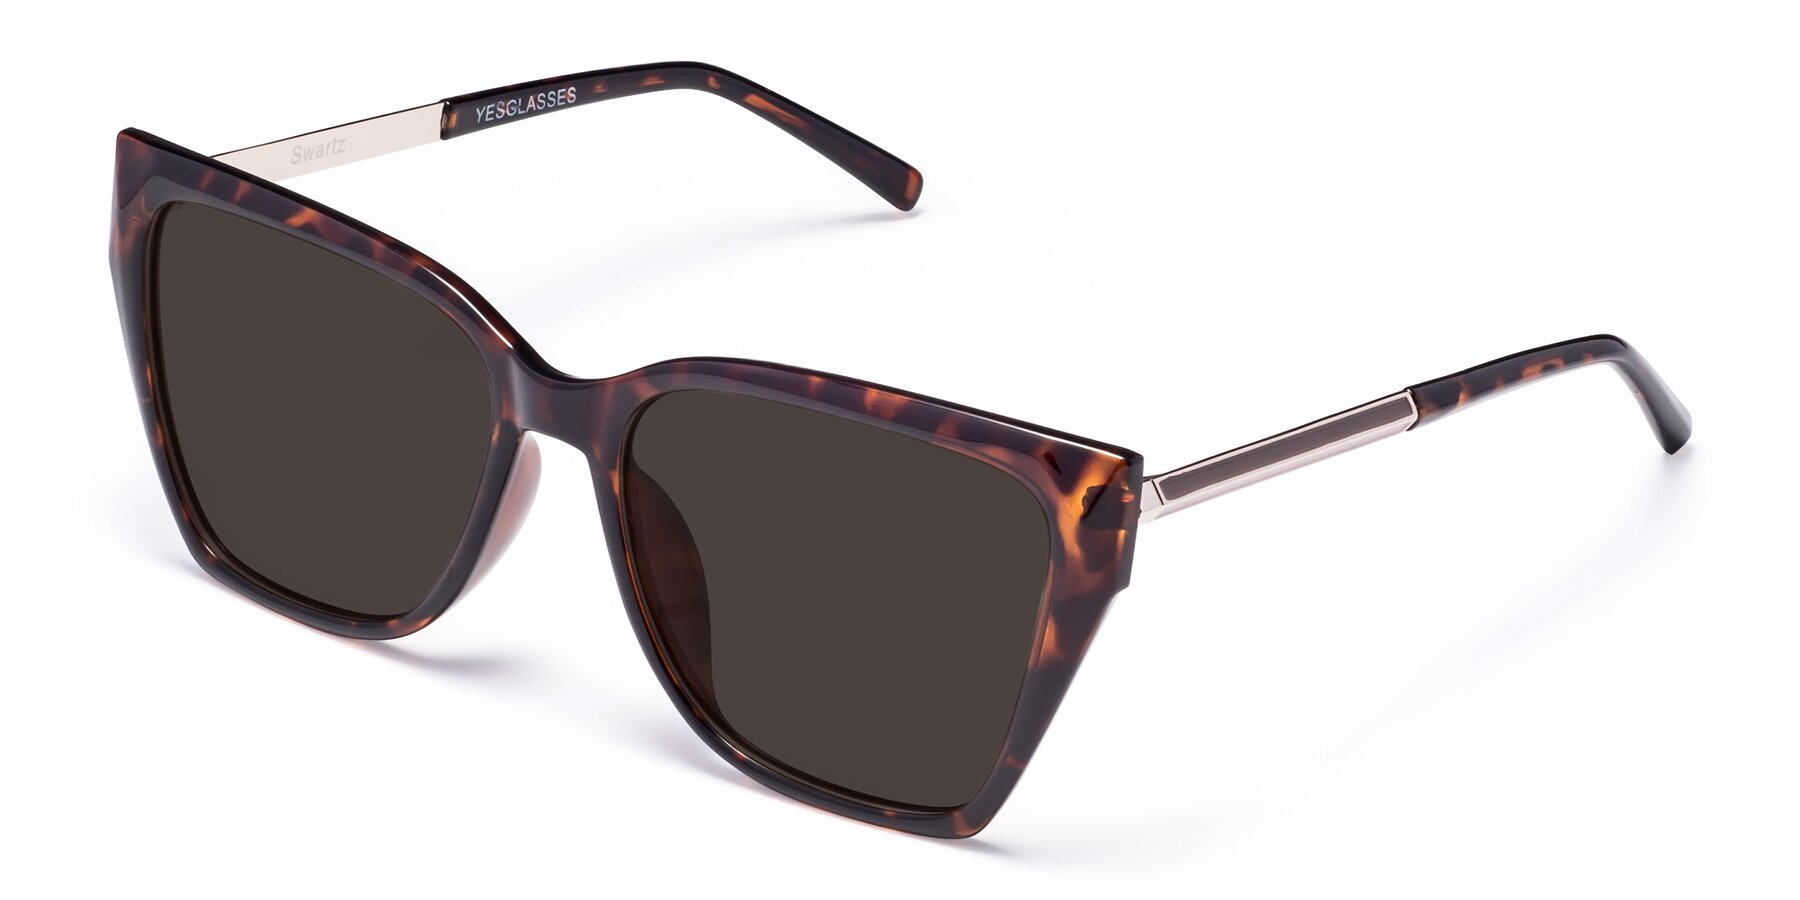 Angle of Swartz in Tortoise with Gray Tinted Lenses